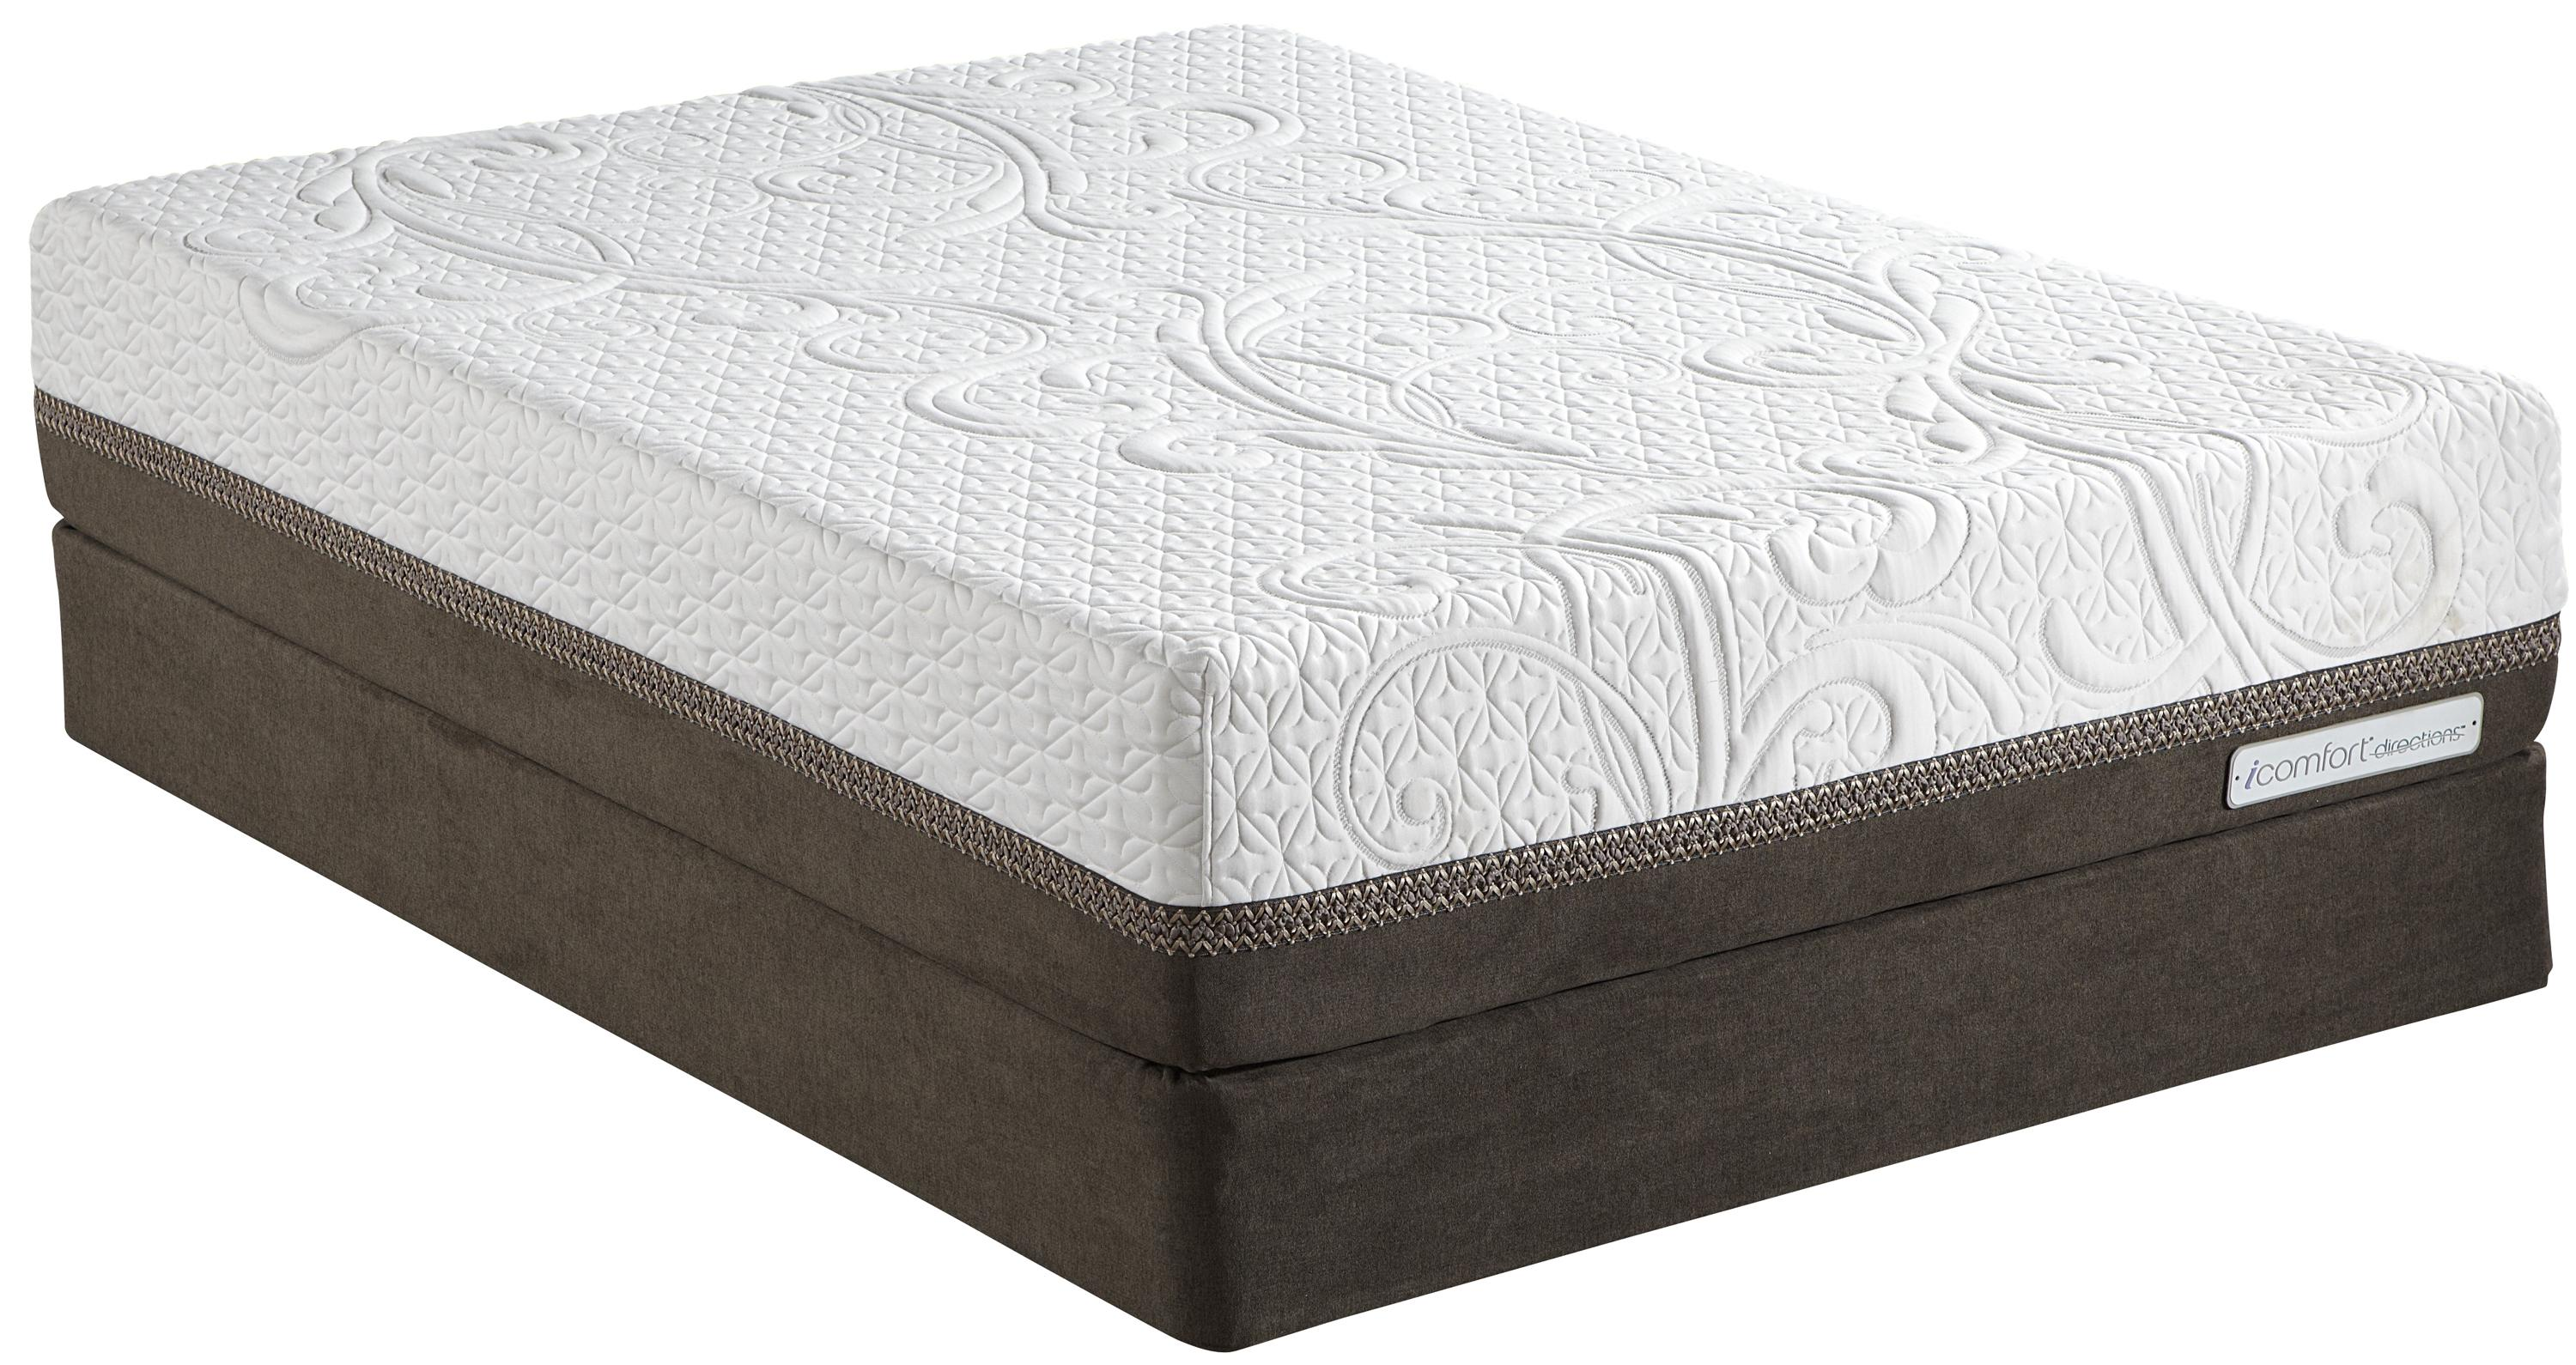 Serta iComfort Directions Reinvention Queen Memory Foam Mattress Set  - Item Number: 823028Q+824399Q